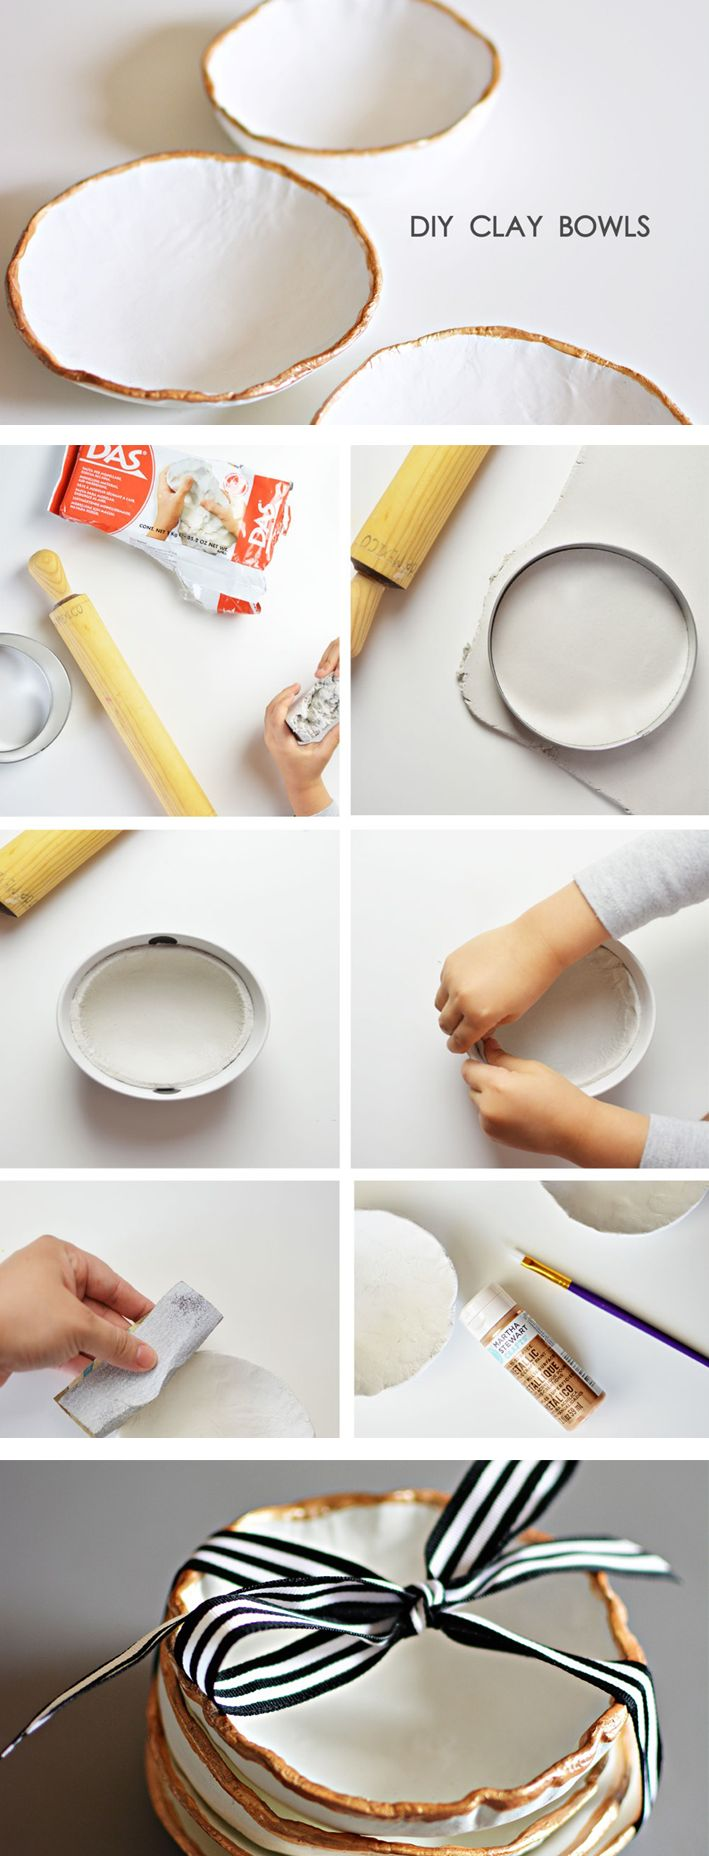 Here's a great project you can do with kids and give a gift people will really treasure. There's nothing like homemade! Clay bowls DIY craft from @aliblog on the SC Johnson blog.